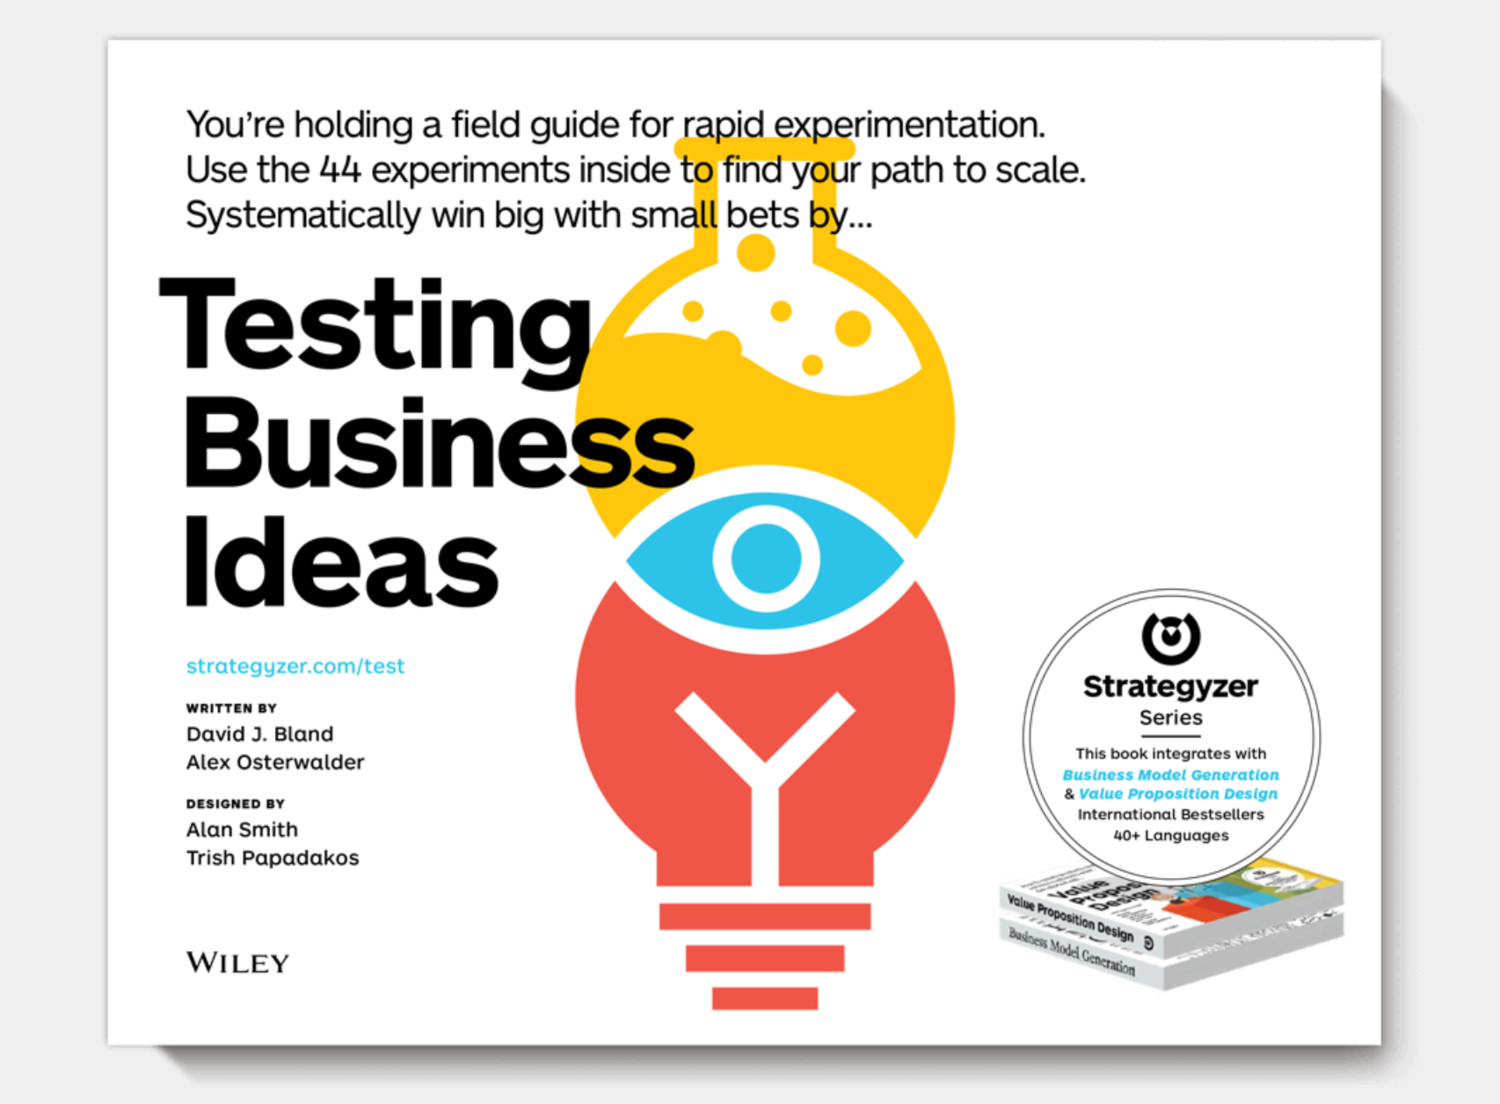 David J. Bland - Testing Business Ideas book cover